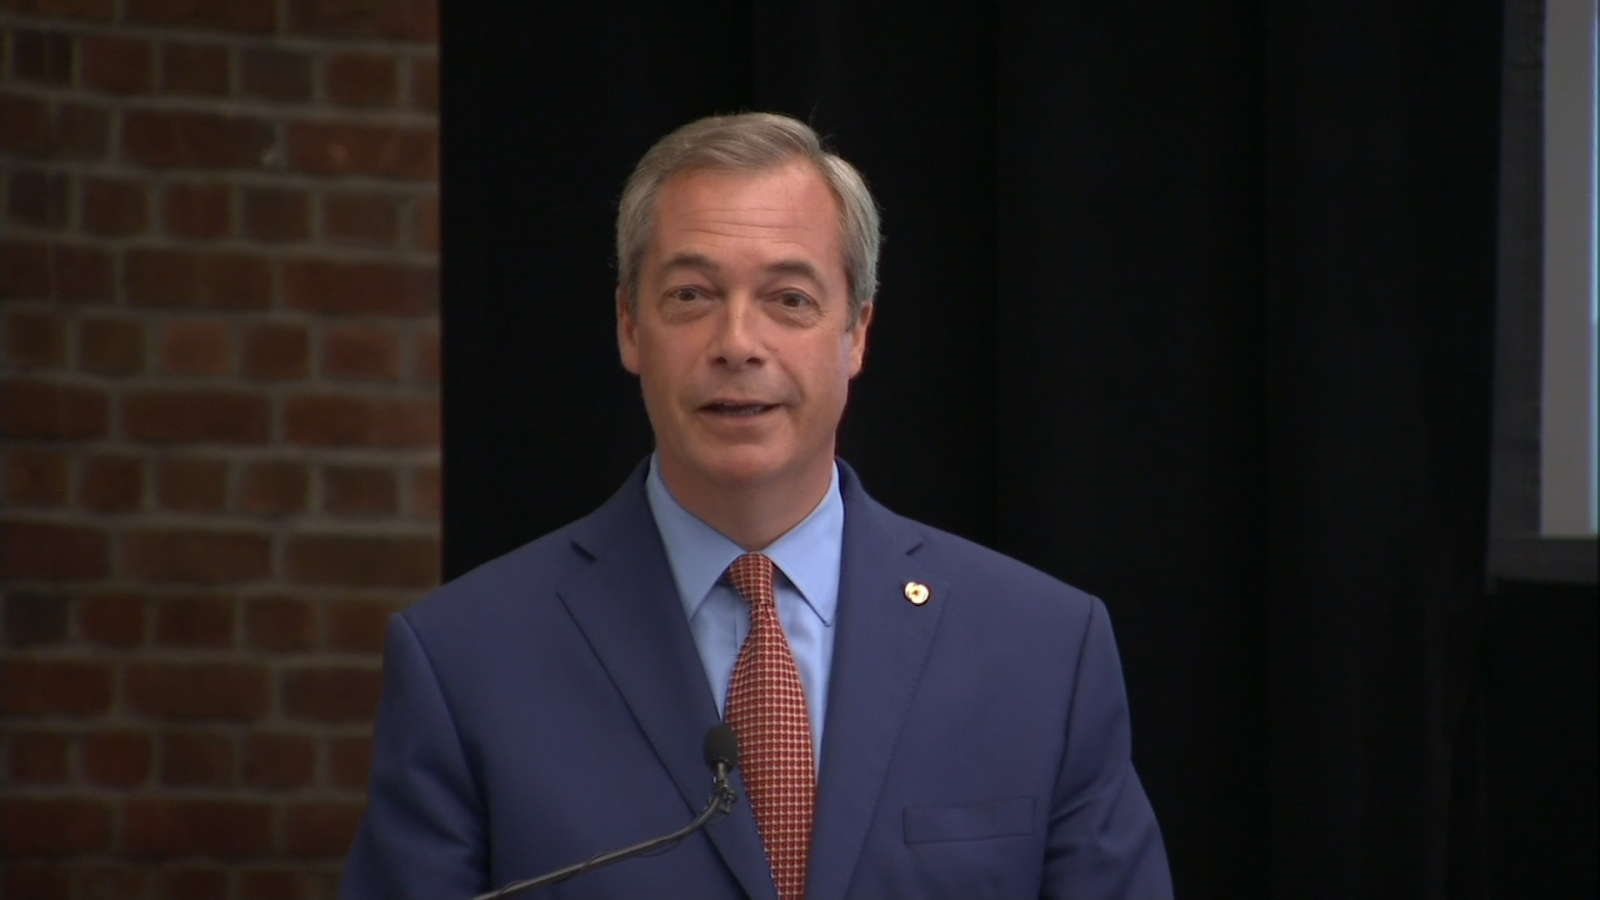 Nigel Farage resigns